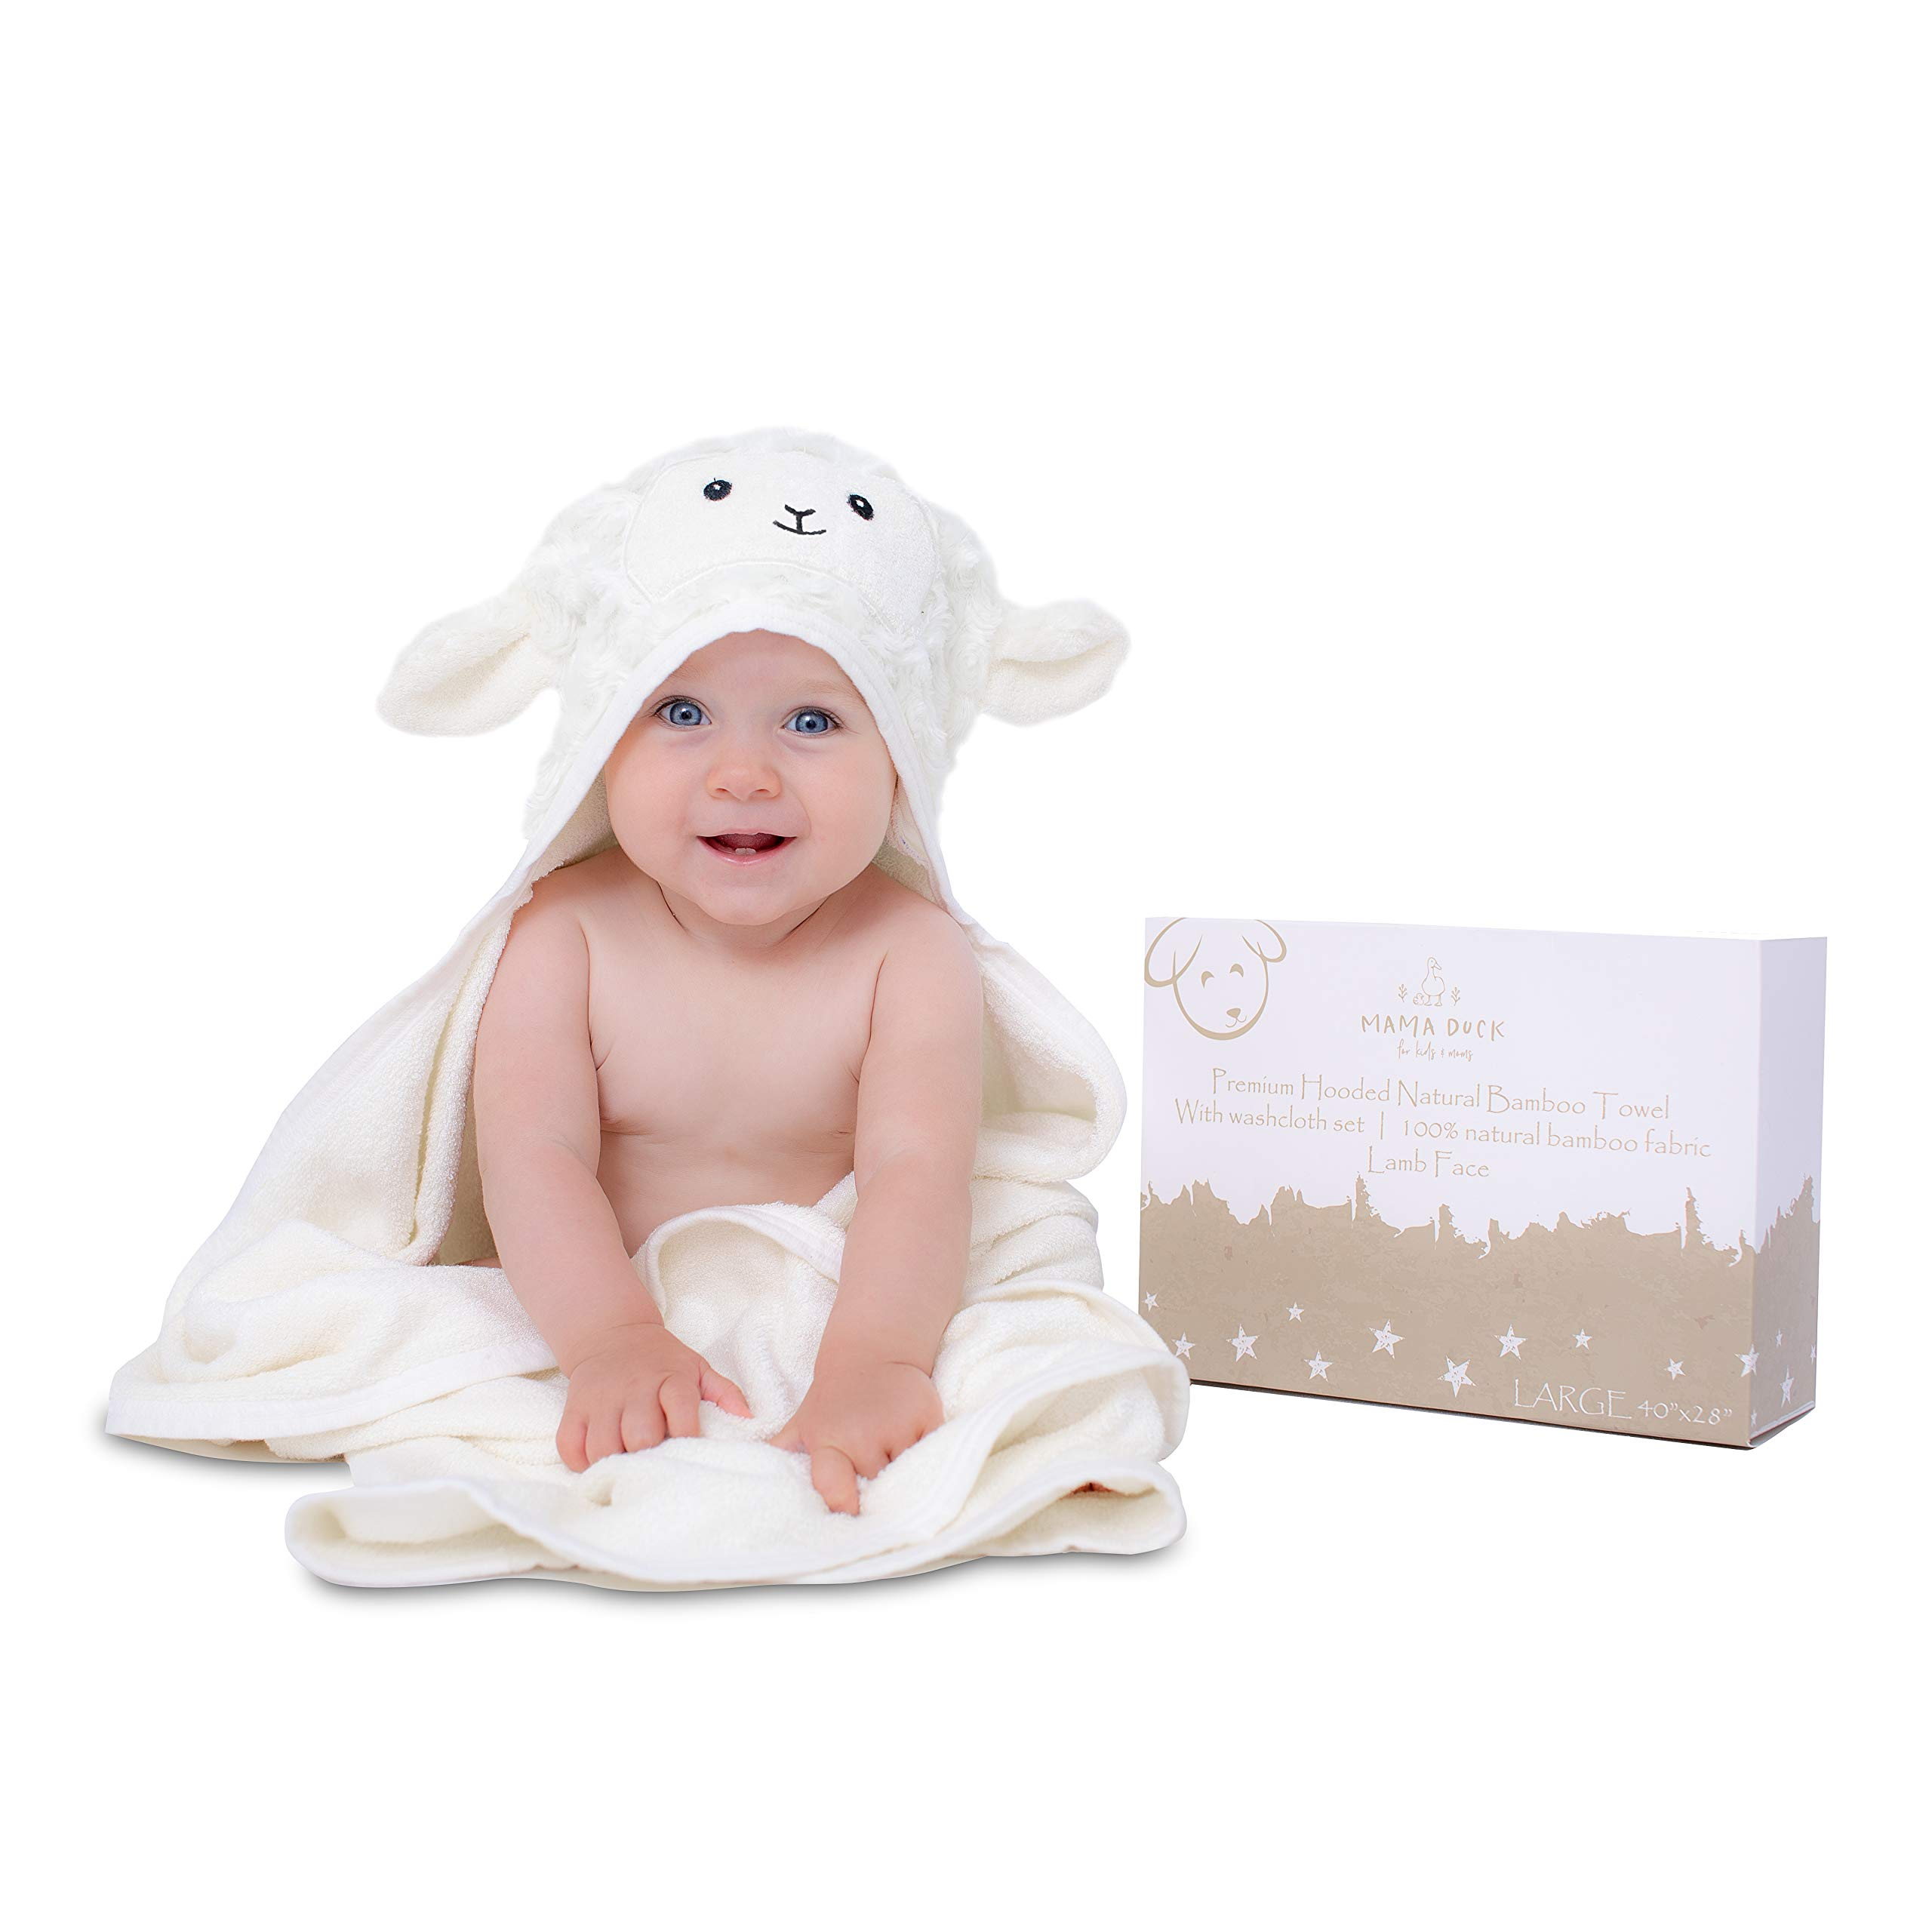 XL 40''X28'' Ultra Soft Rayon from Bamboo Baby Hooded Towel & Washcloth Set | Bamboo Infant Towel | Lamb | Thick, Soft & Ultra Absorbent | Newborn Baby Shower Gift Toddler, Boy & Girl Unisex by MAMA DUCK